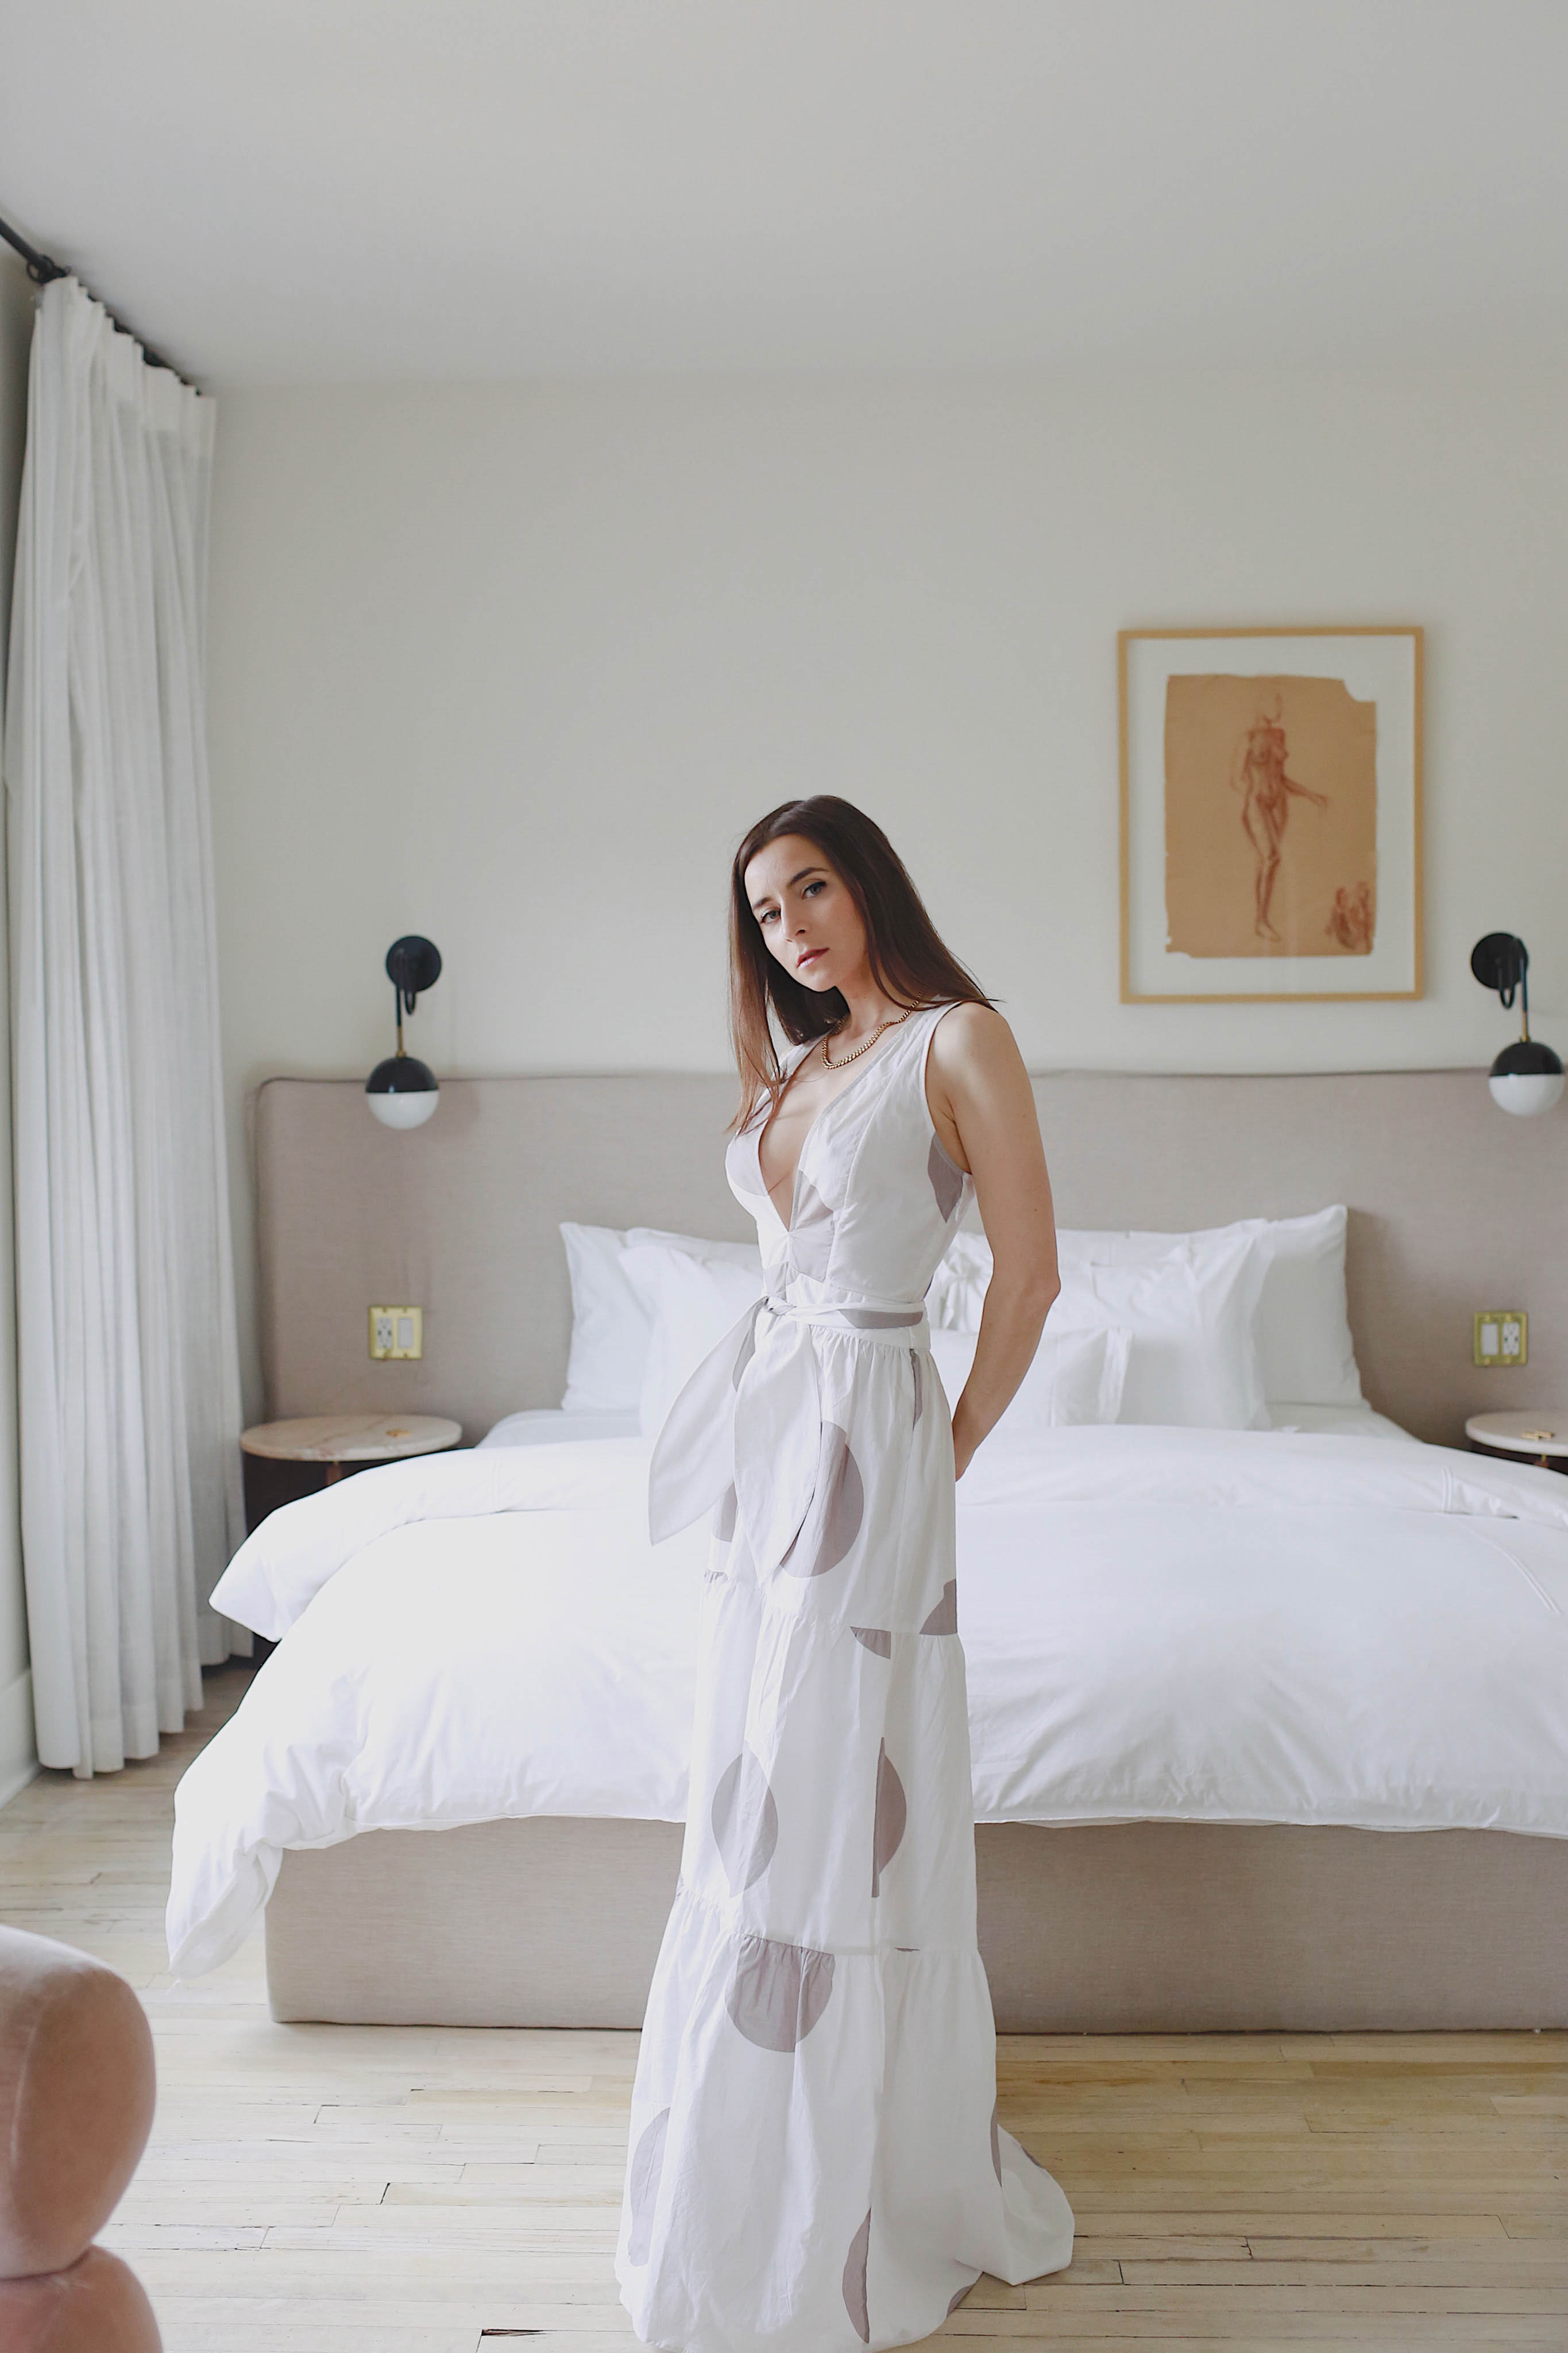 Discover the hidden gem Hotel Covell: a small luxury boutique hotel in Los Angeles. Parisian vibes and opulant rooms: Hotel Covell is a luxury independent hotel for short / long term stay. Wearing Alexandra Miro Polka dots maxi dress